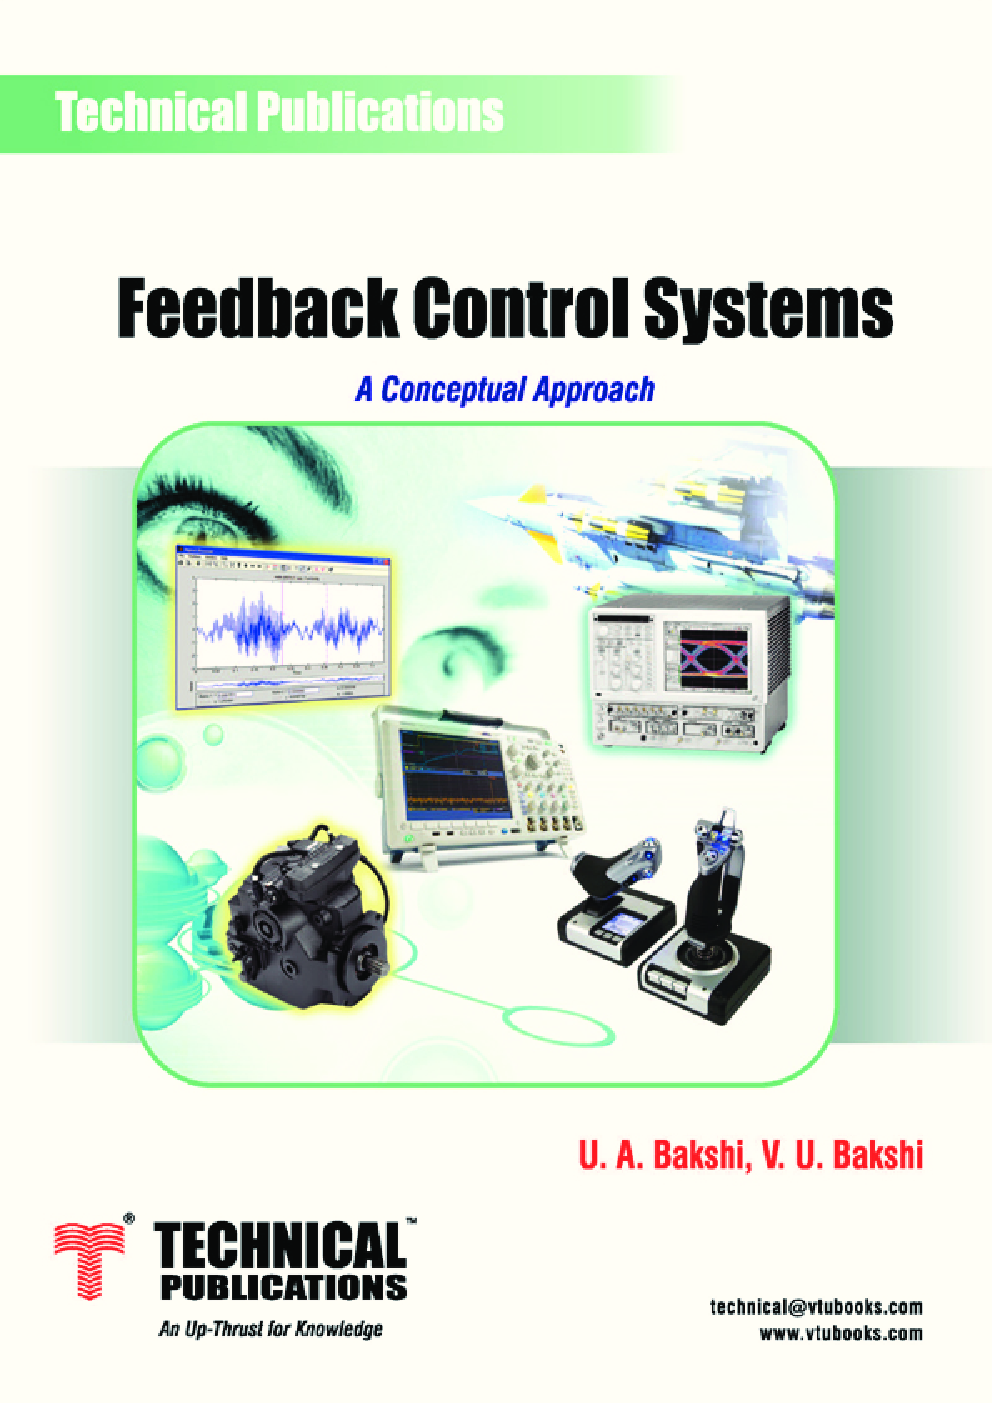 Feedback Control Systems (A Conceptual Approach) - Page 1